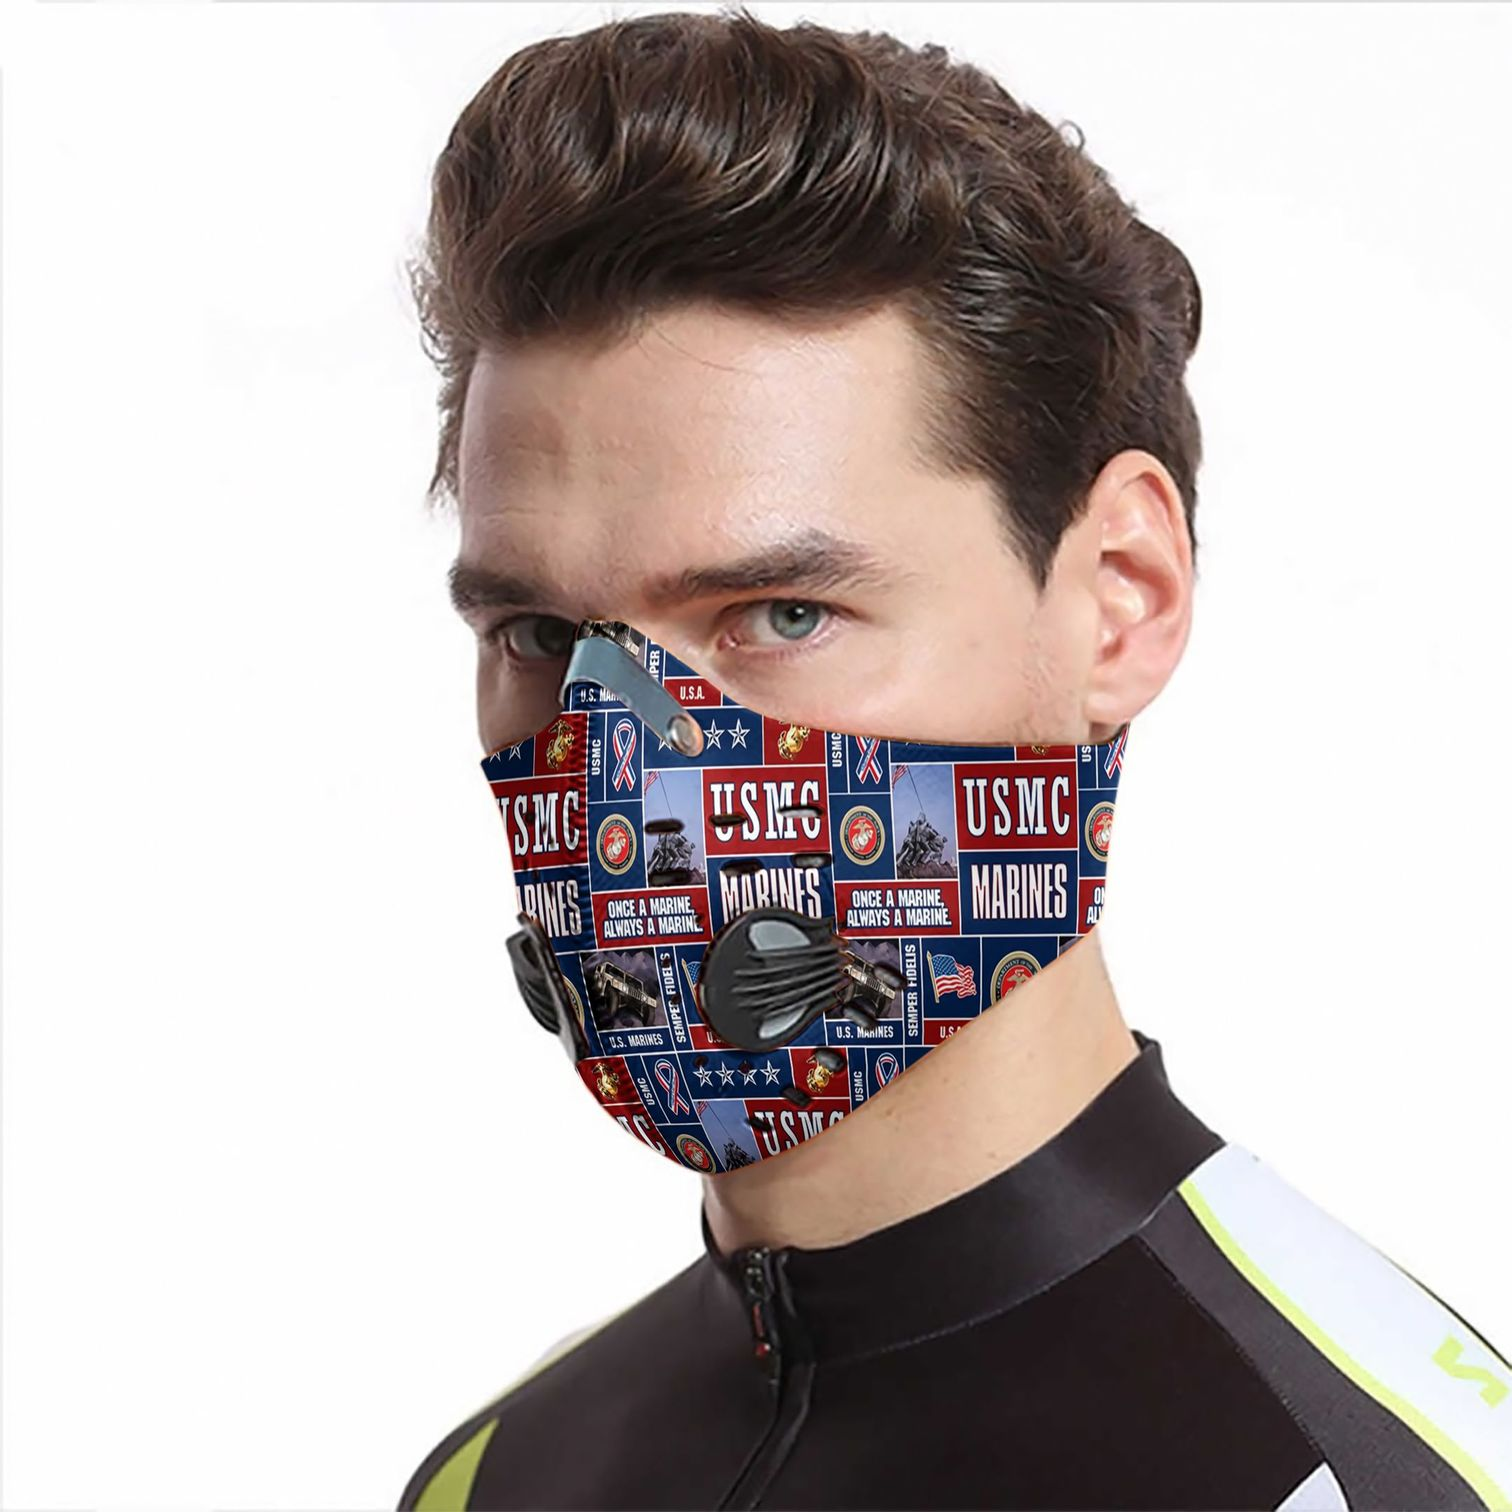 USMC marine be strong carbon pm 2,5 face mask 1